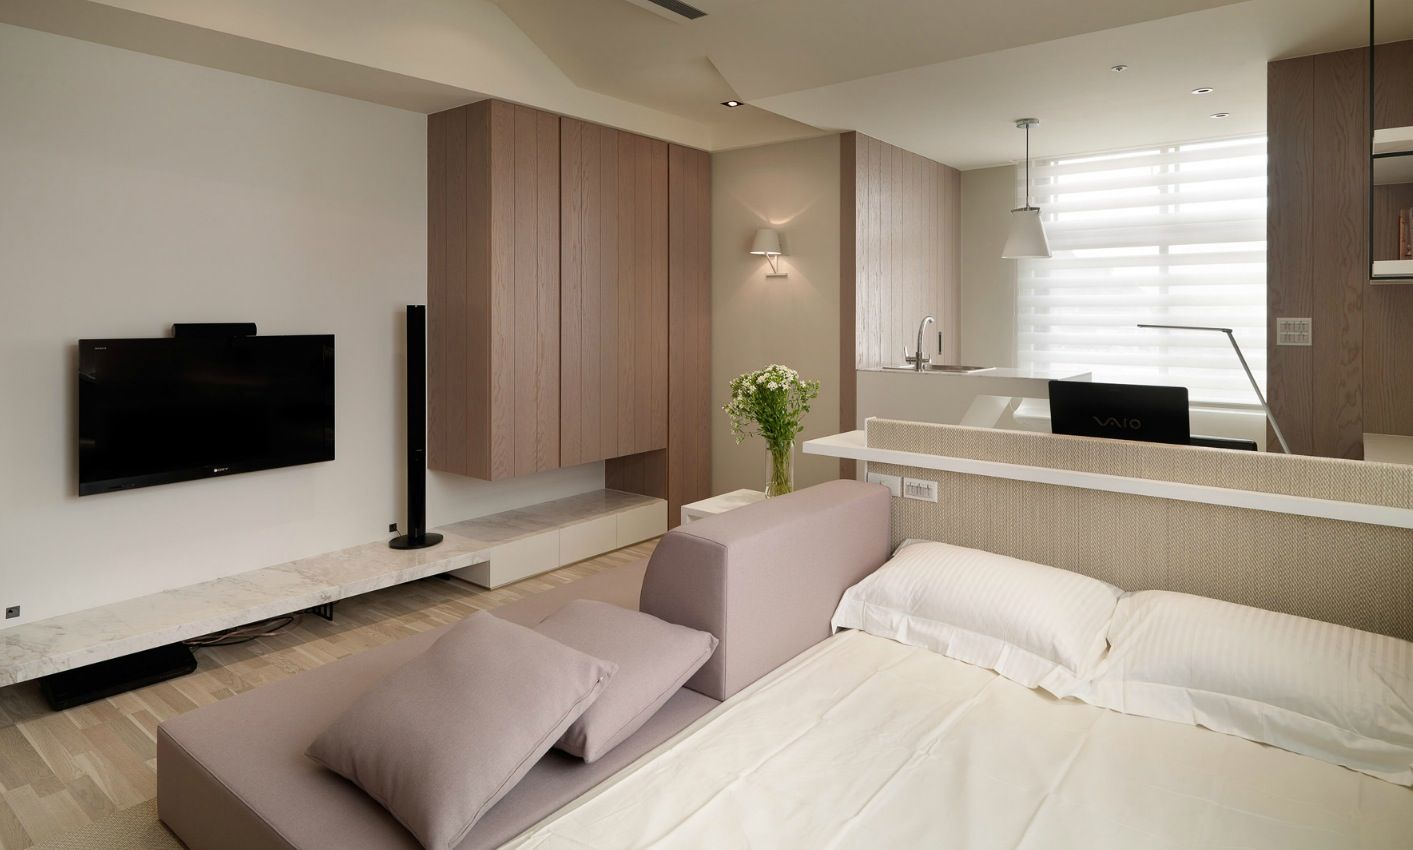 Studio Apartment Design Studio Apartment Ideas  Apartment Designs Studio Apartment